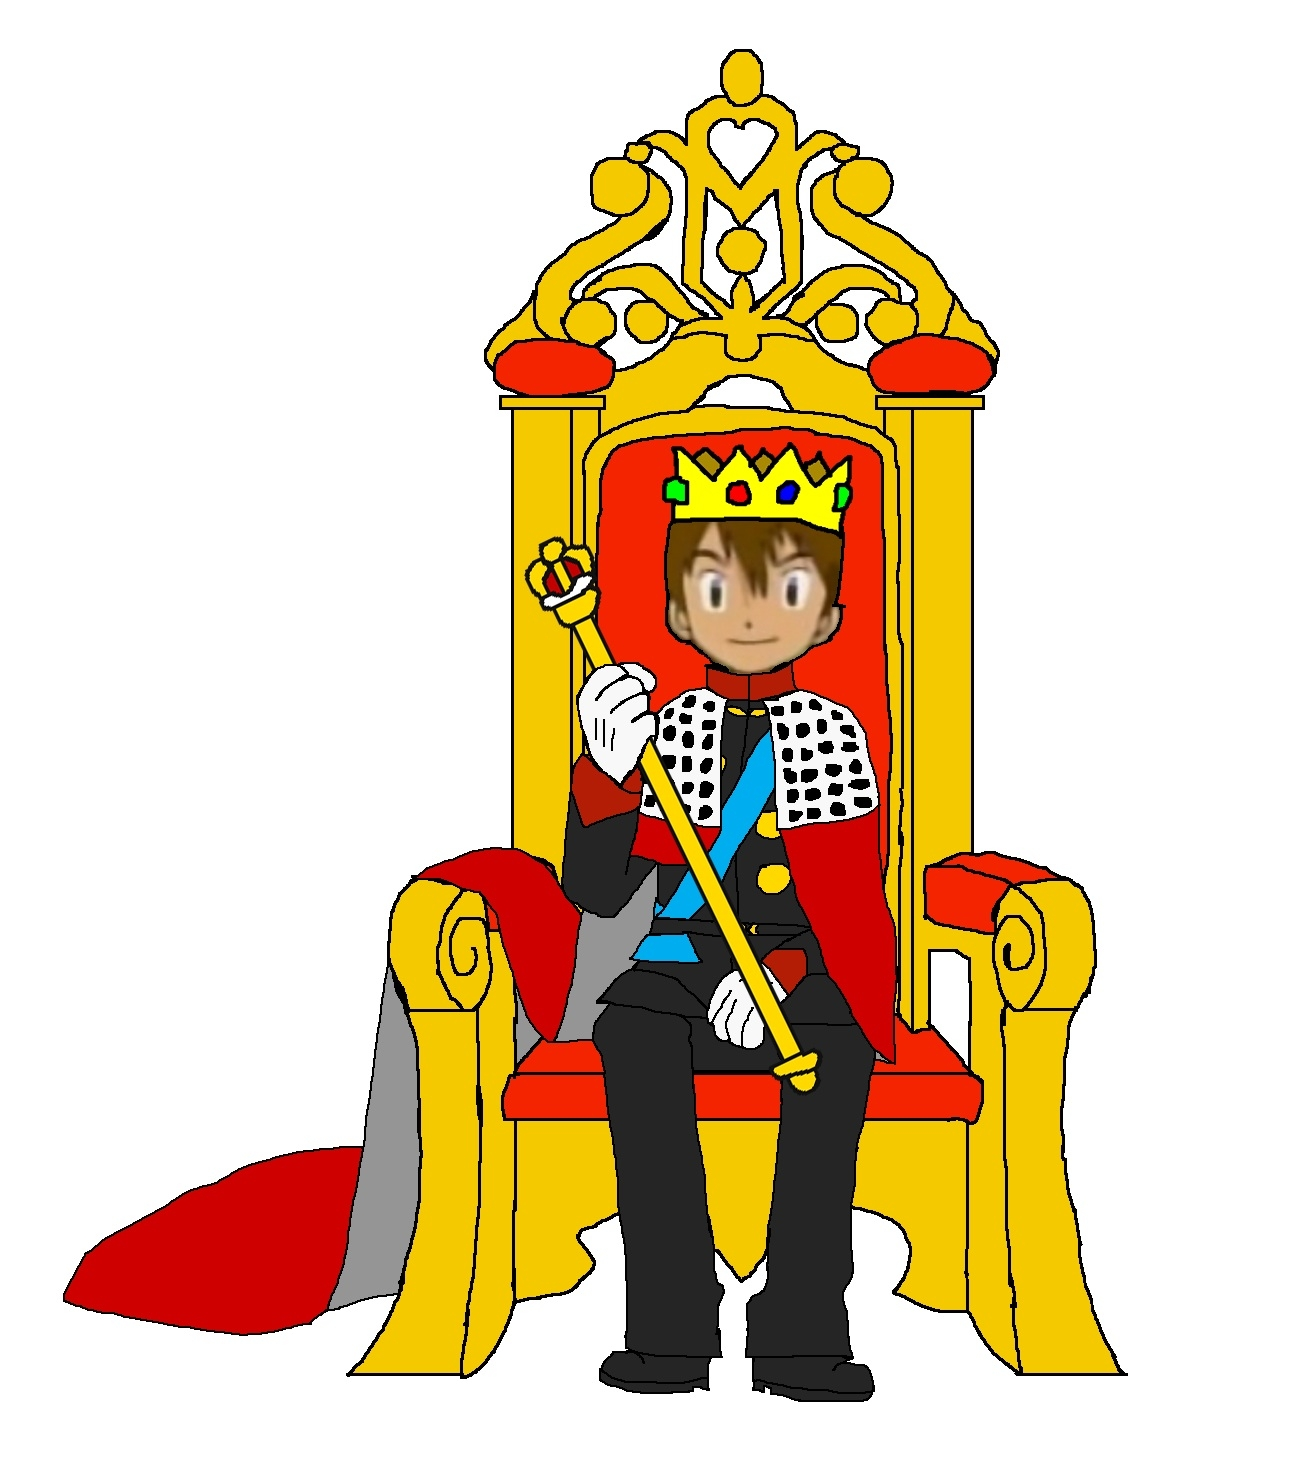 transparent King throne clipart. On free download best